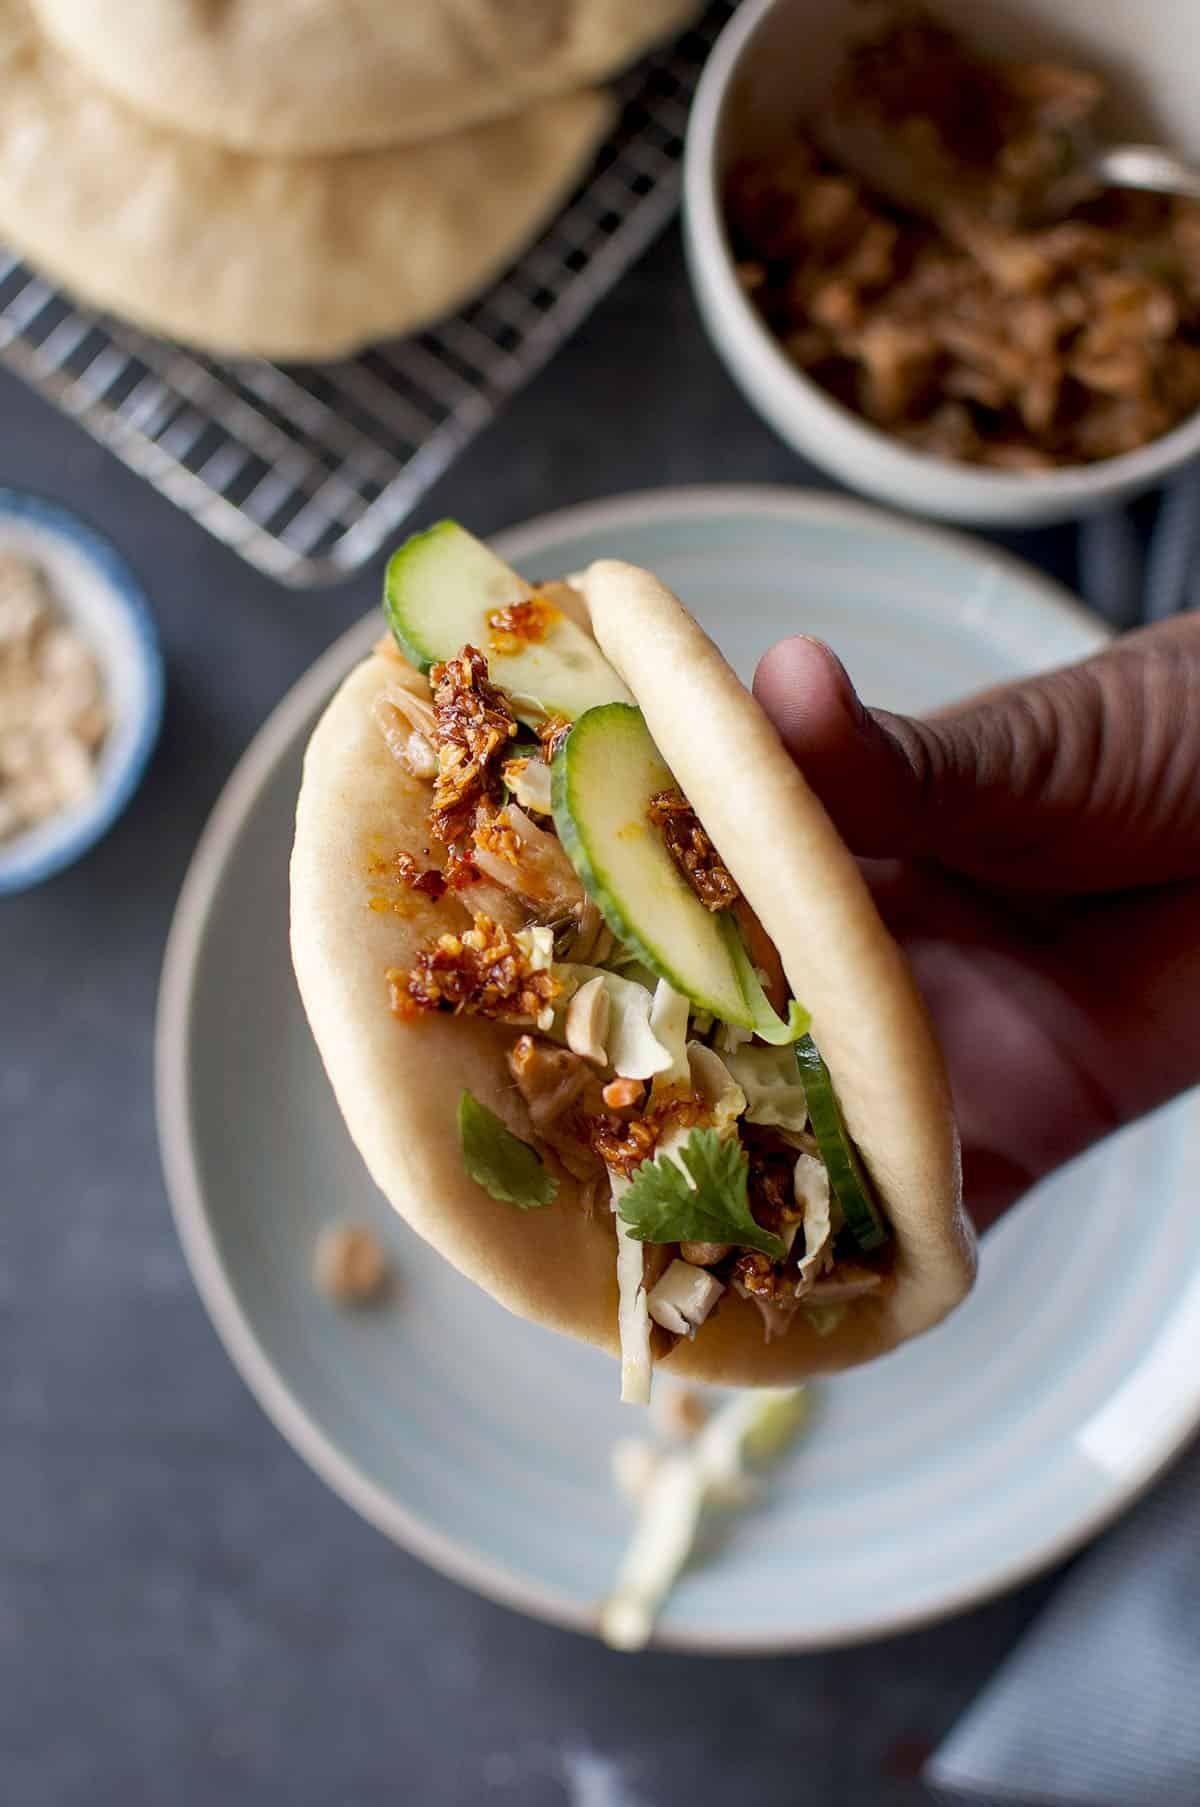 Hand holding steamed bun filled with jackfruit and veggies